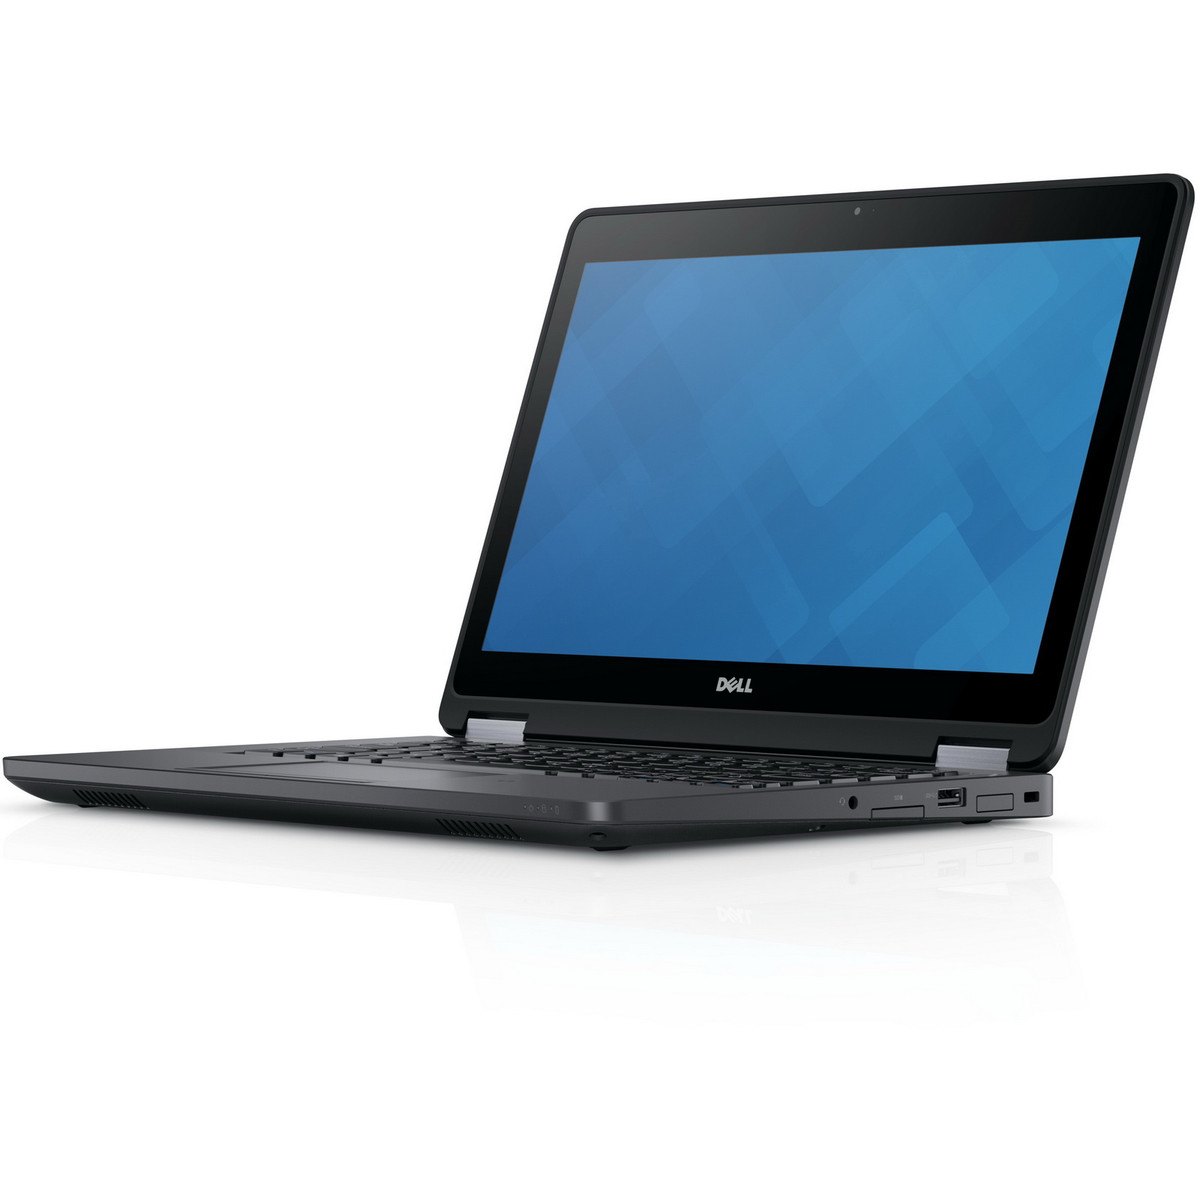 Nb Dell Latitude 5270 I5-6300U 2.4Ghz|Hd500Gb|4Gb|12|Win10 Pro|Preto